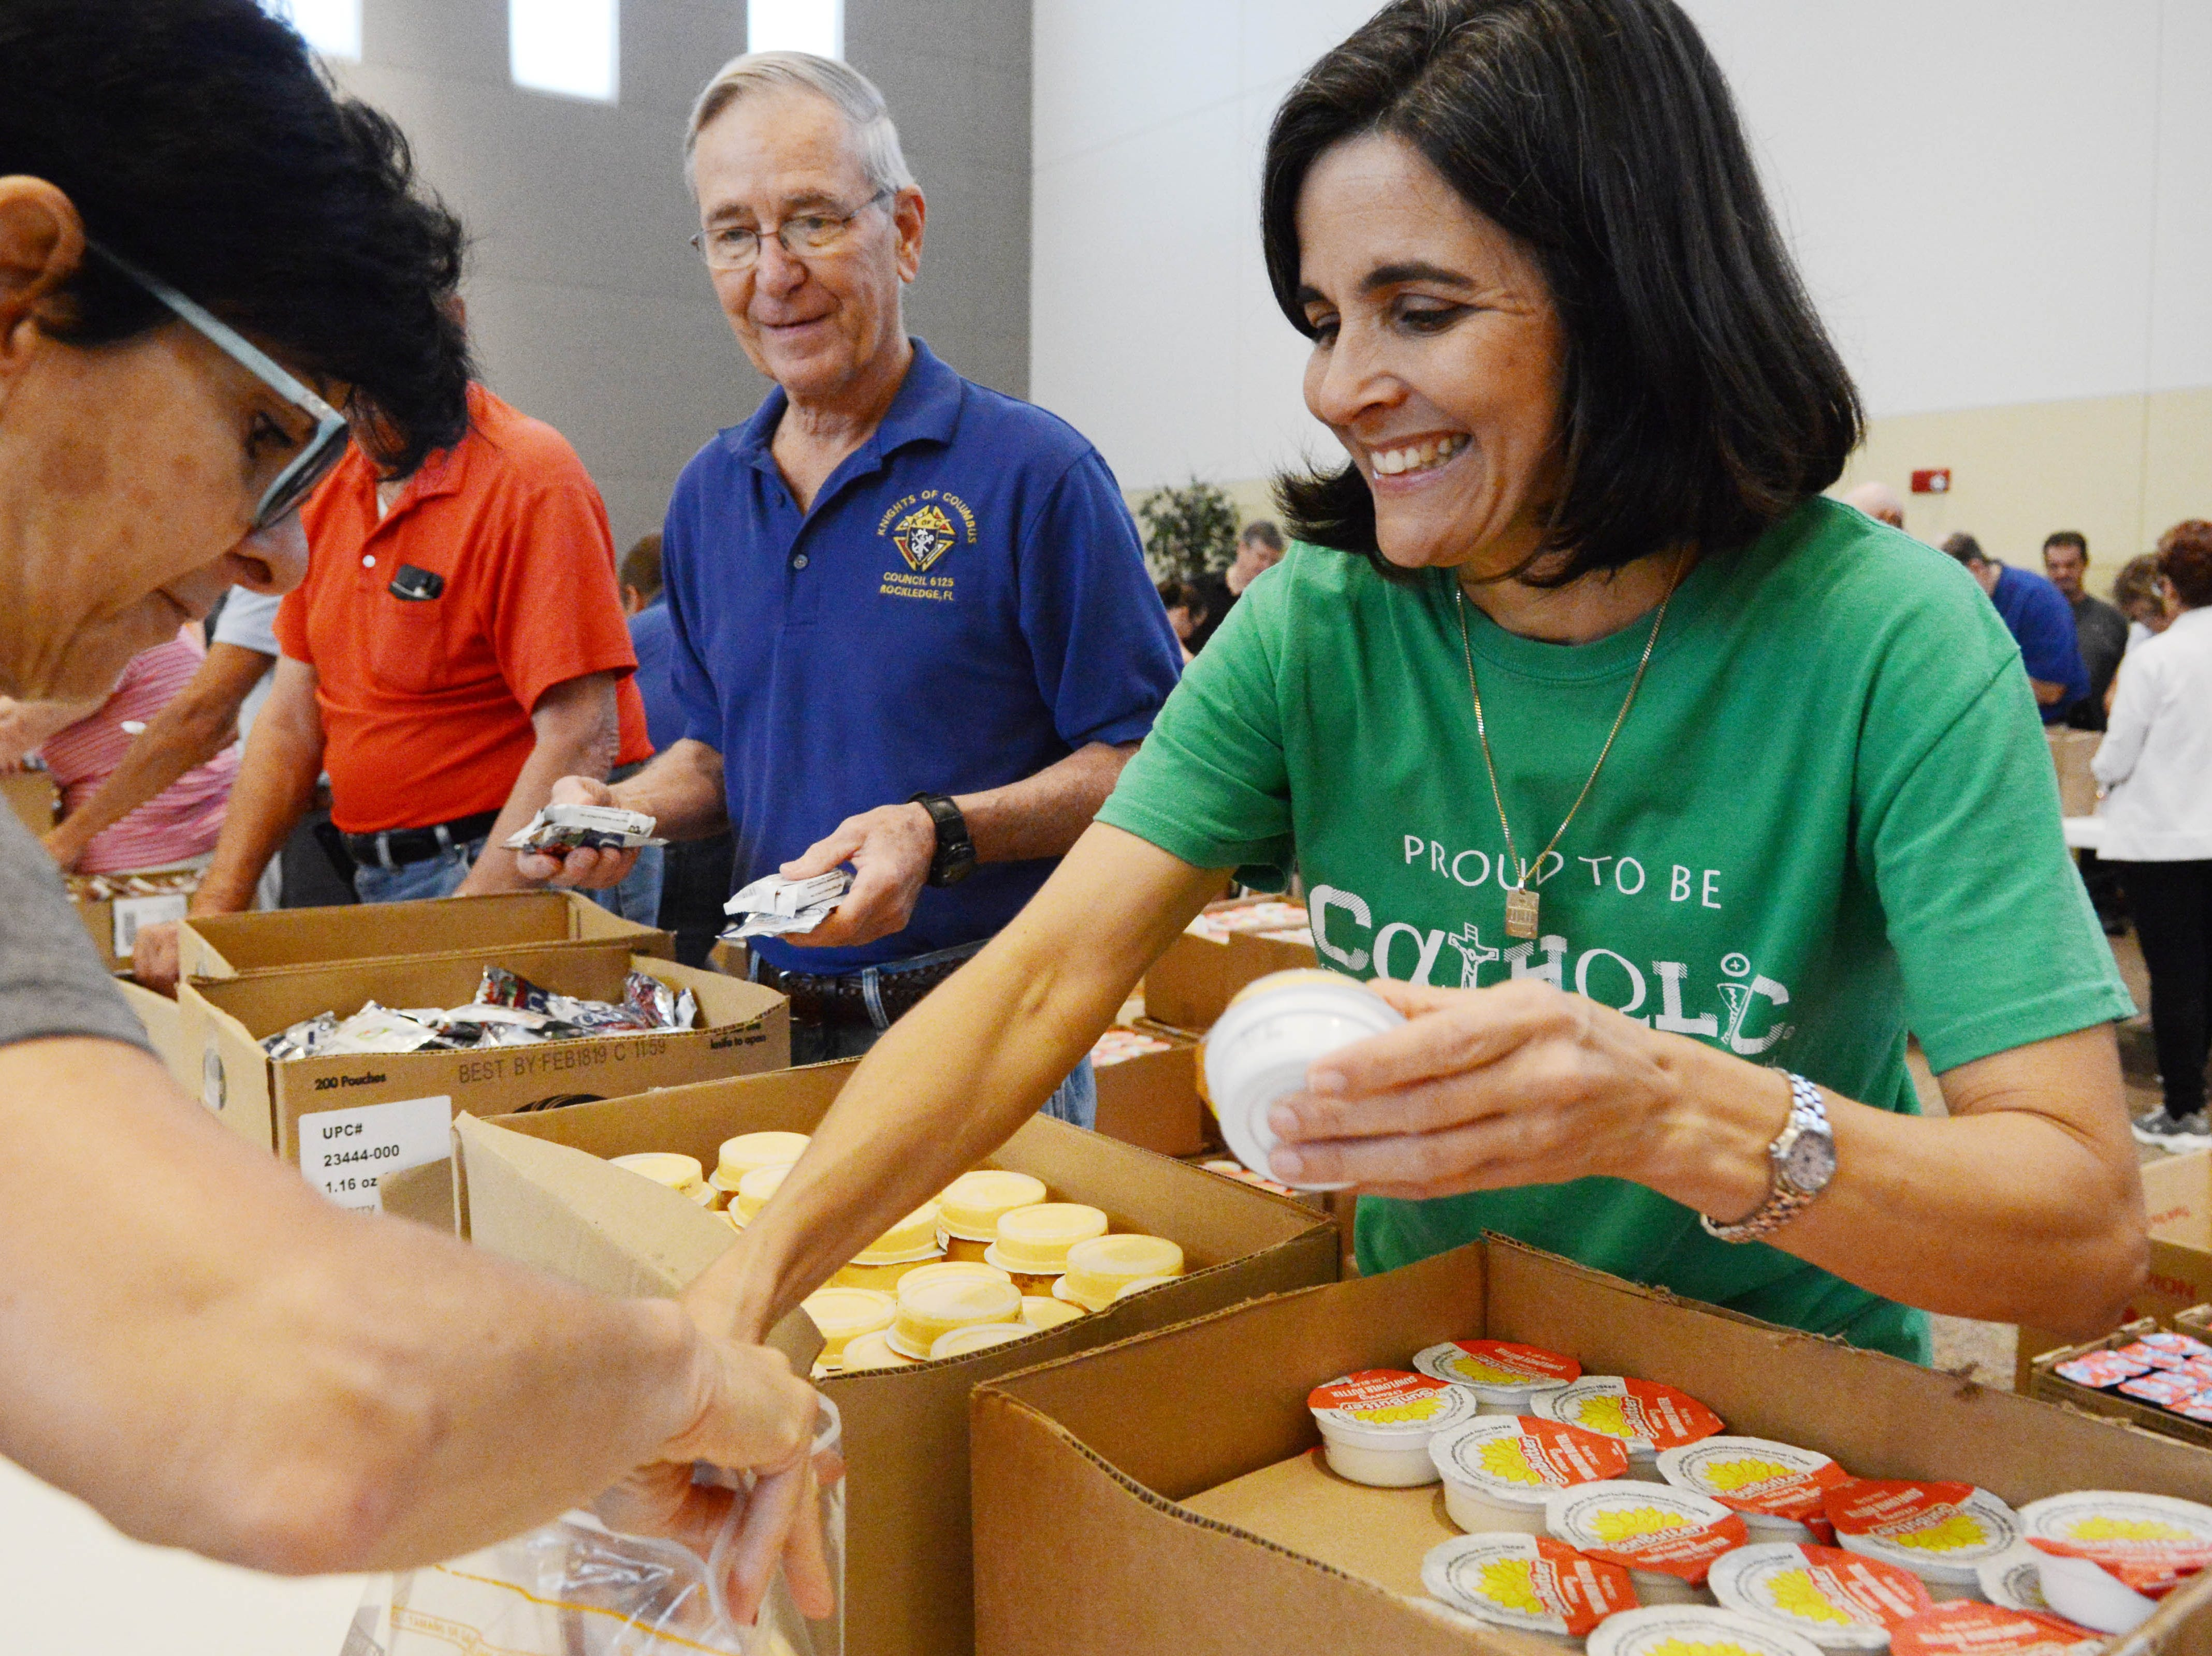 Hundreds of volunteers showed up at St. John the Evangelist Church in Viera to help pack lunch kits for The Children's Hunger Project. Their goal was to pack 5000 weekend kits for needy children in the area who may go without during the weekend.